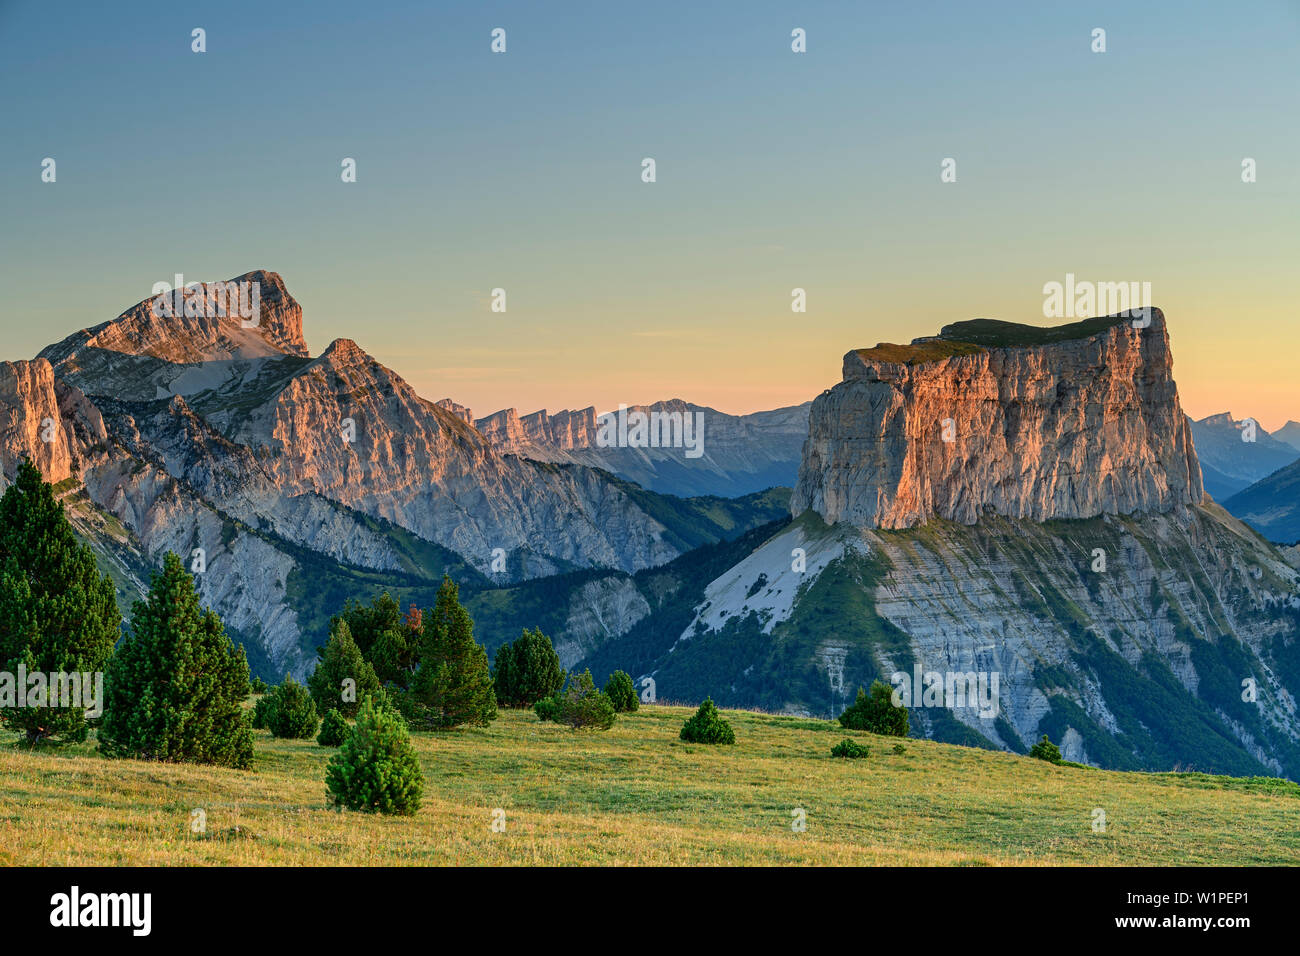 Grand Veymont and Mont Aiguille in the morning light, from the Tête Chevalier, Vercors, Dauphine, Dauphine, Isère, France - Stock Image